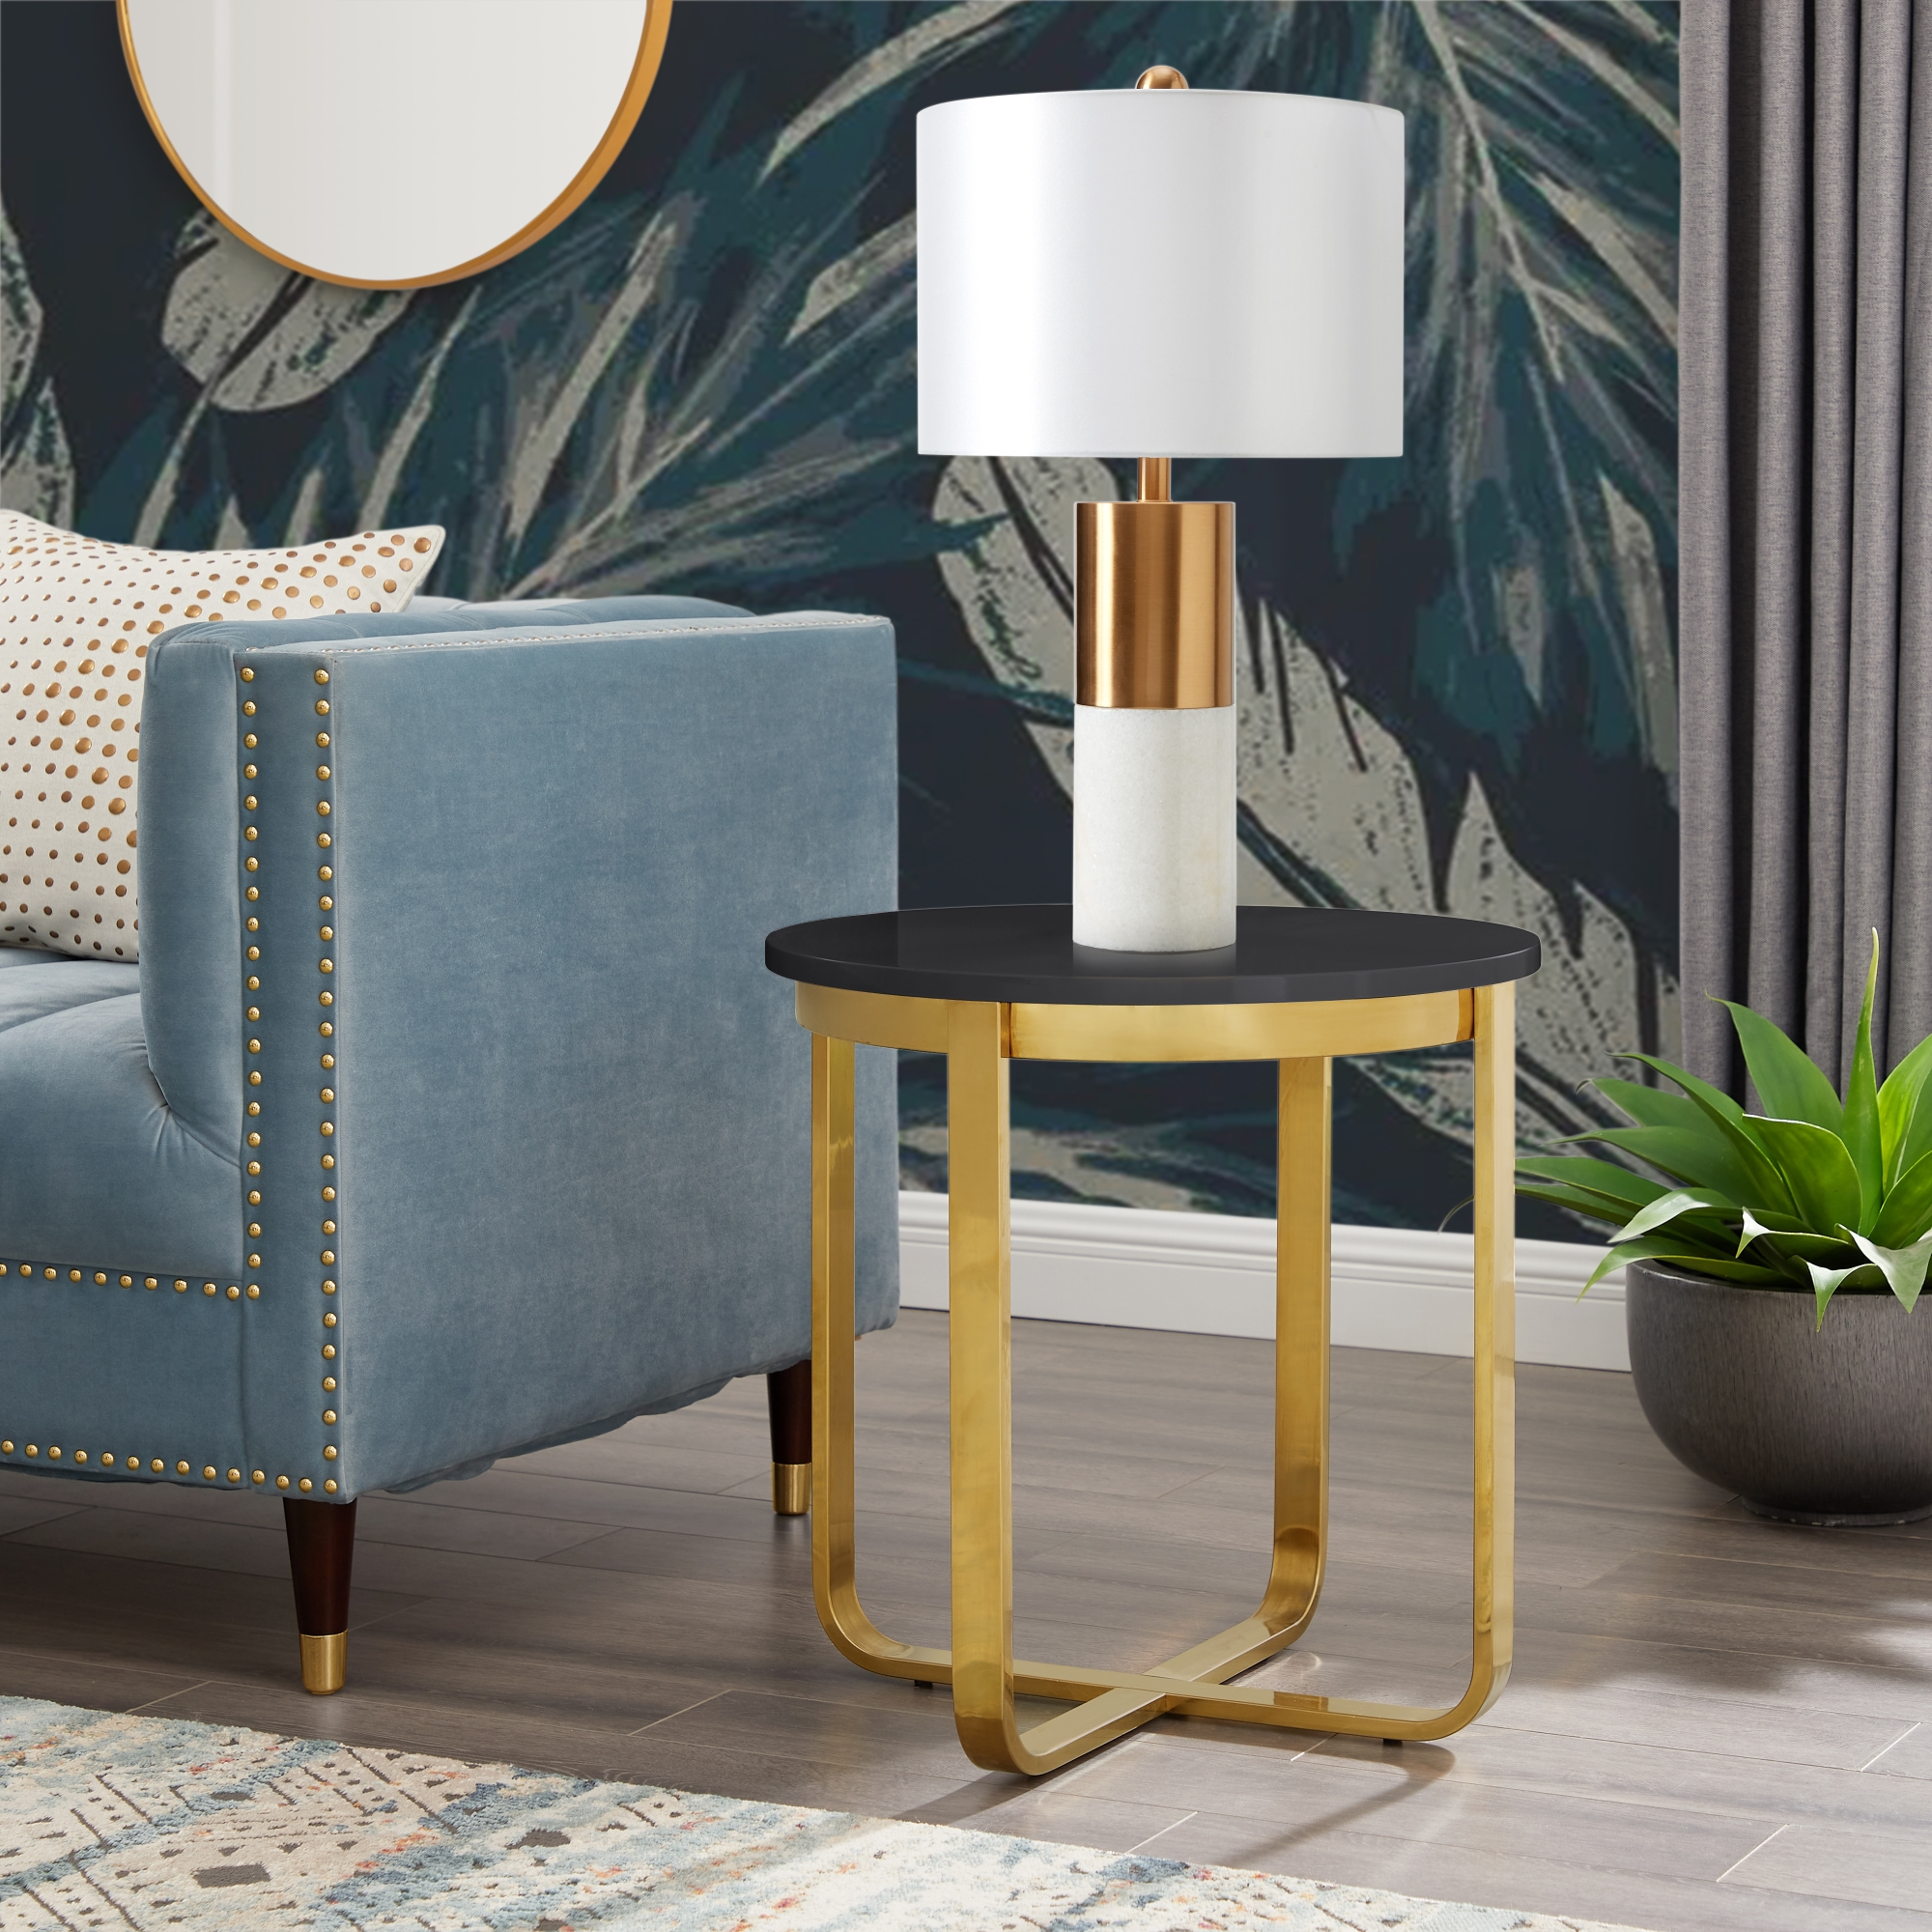 Inspired Home Black/Gold End Table High Gloss Lacquer Finish Top Polished Stainless Steel Base